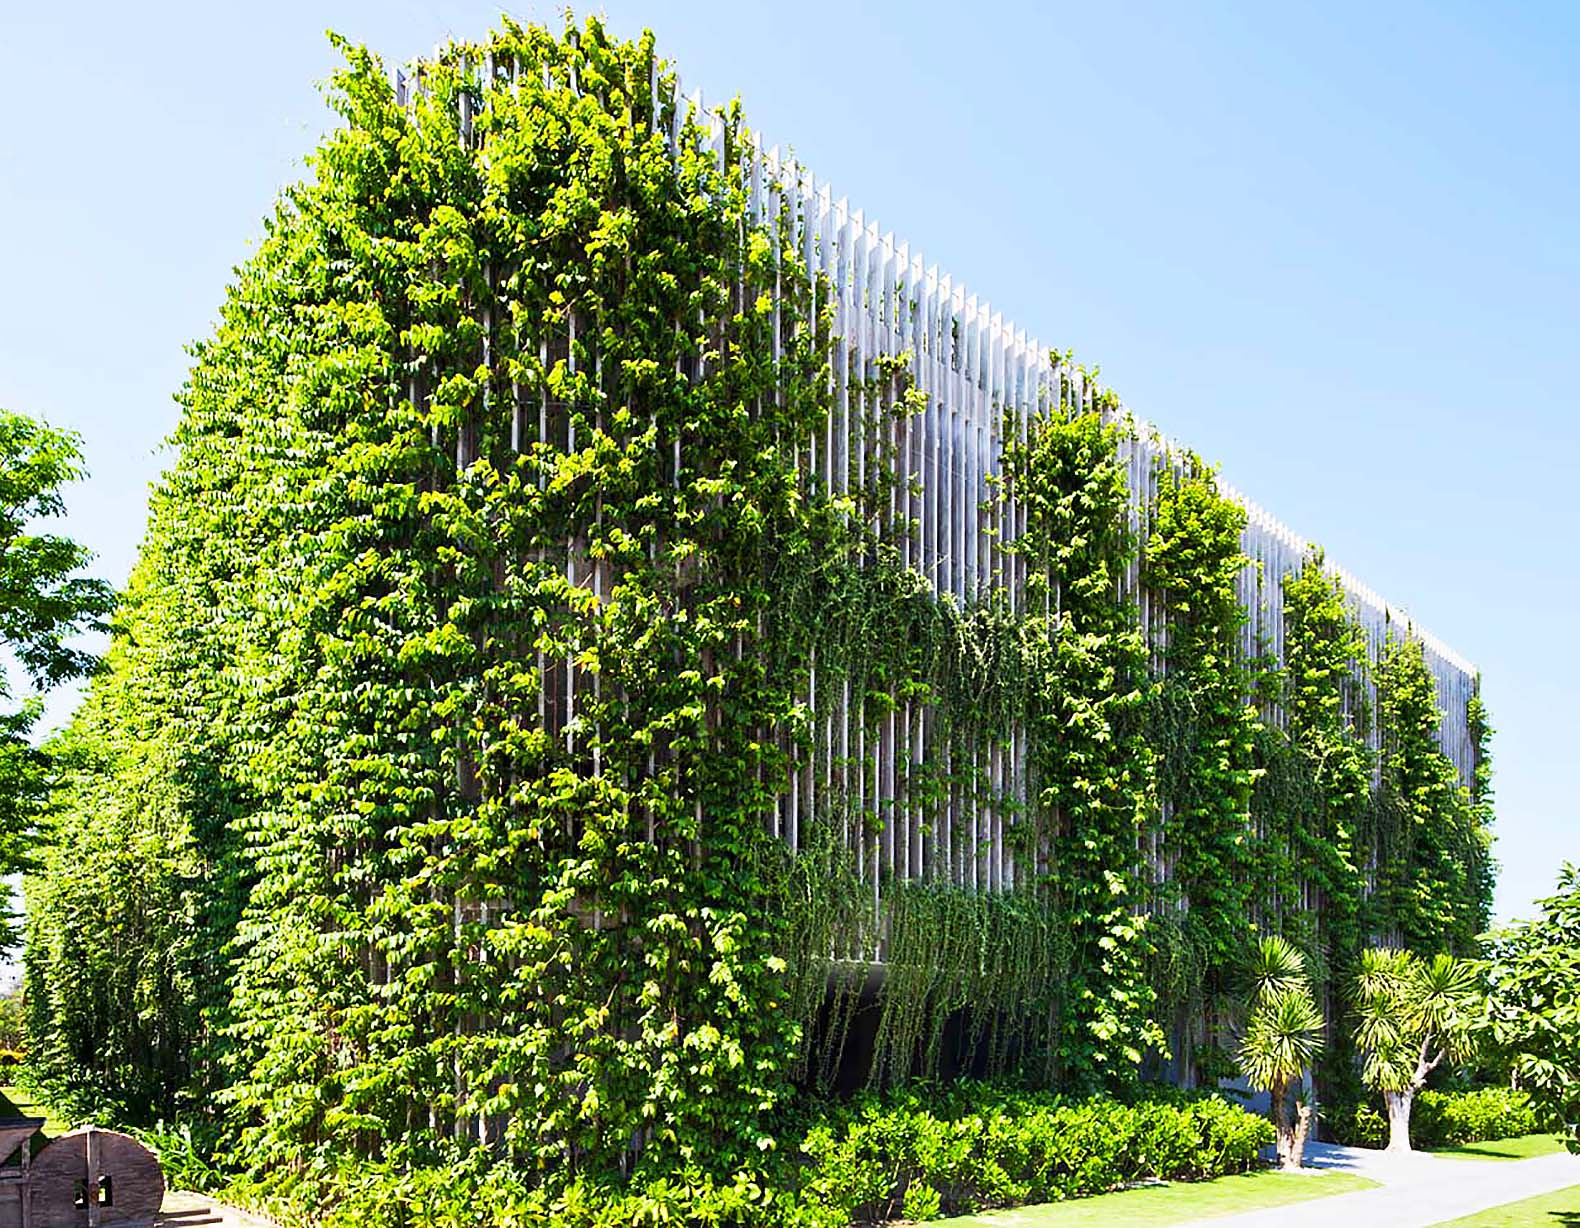 vo trong nghias babylon hotel in vietnam is wrapped in a flourishing veil of plants and vines